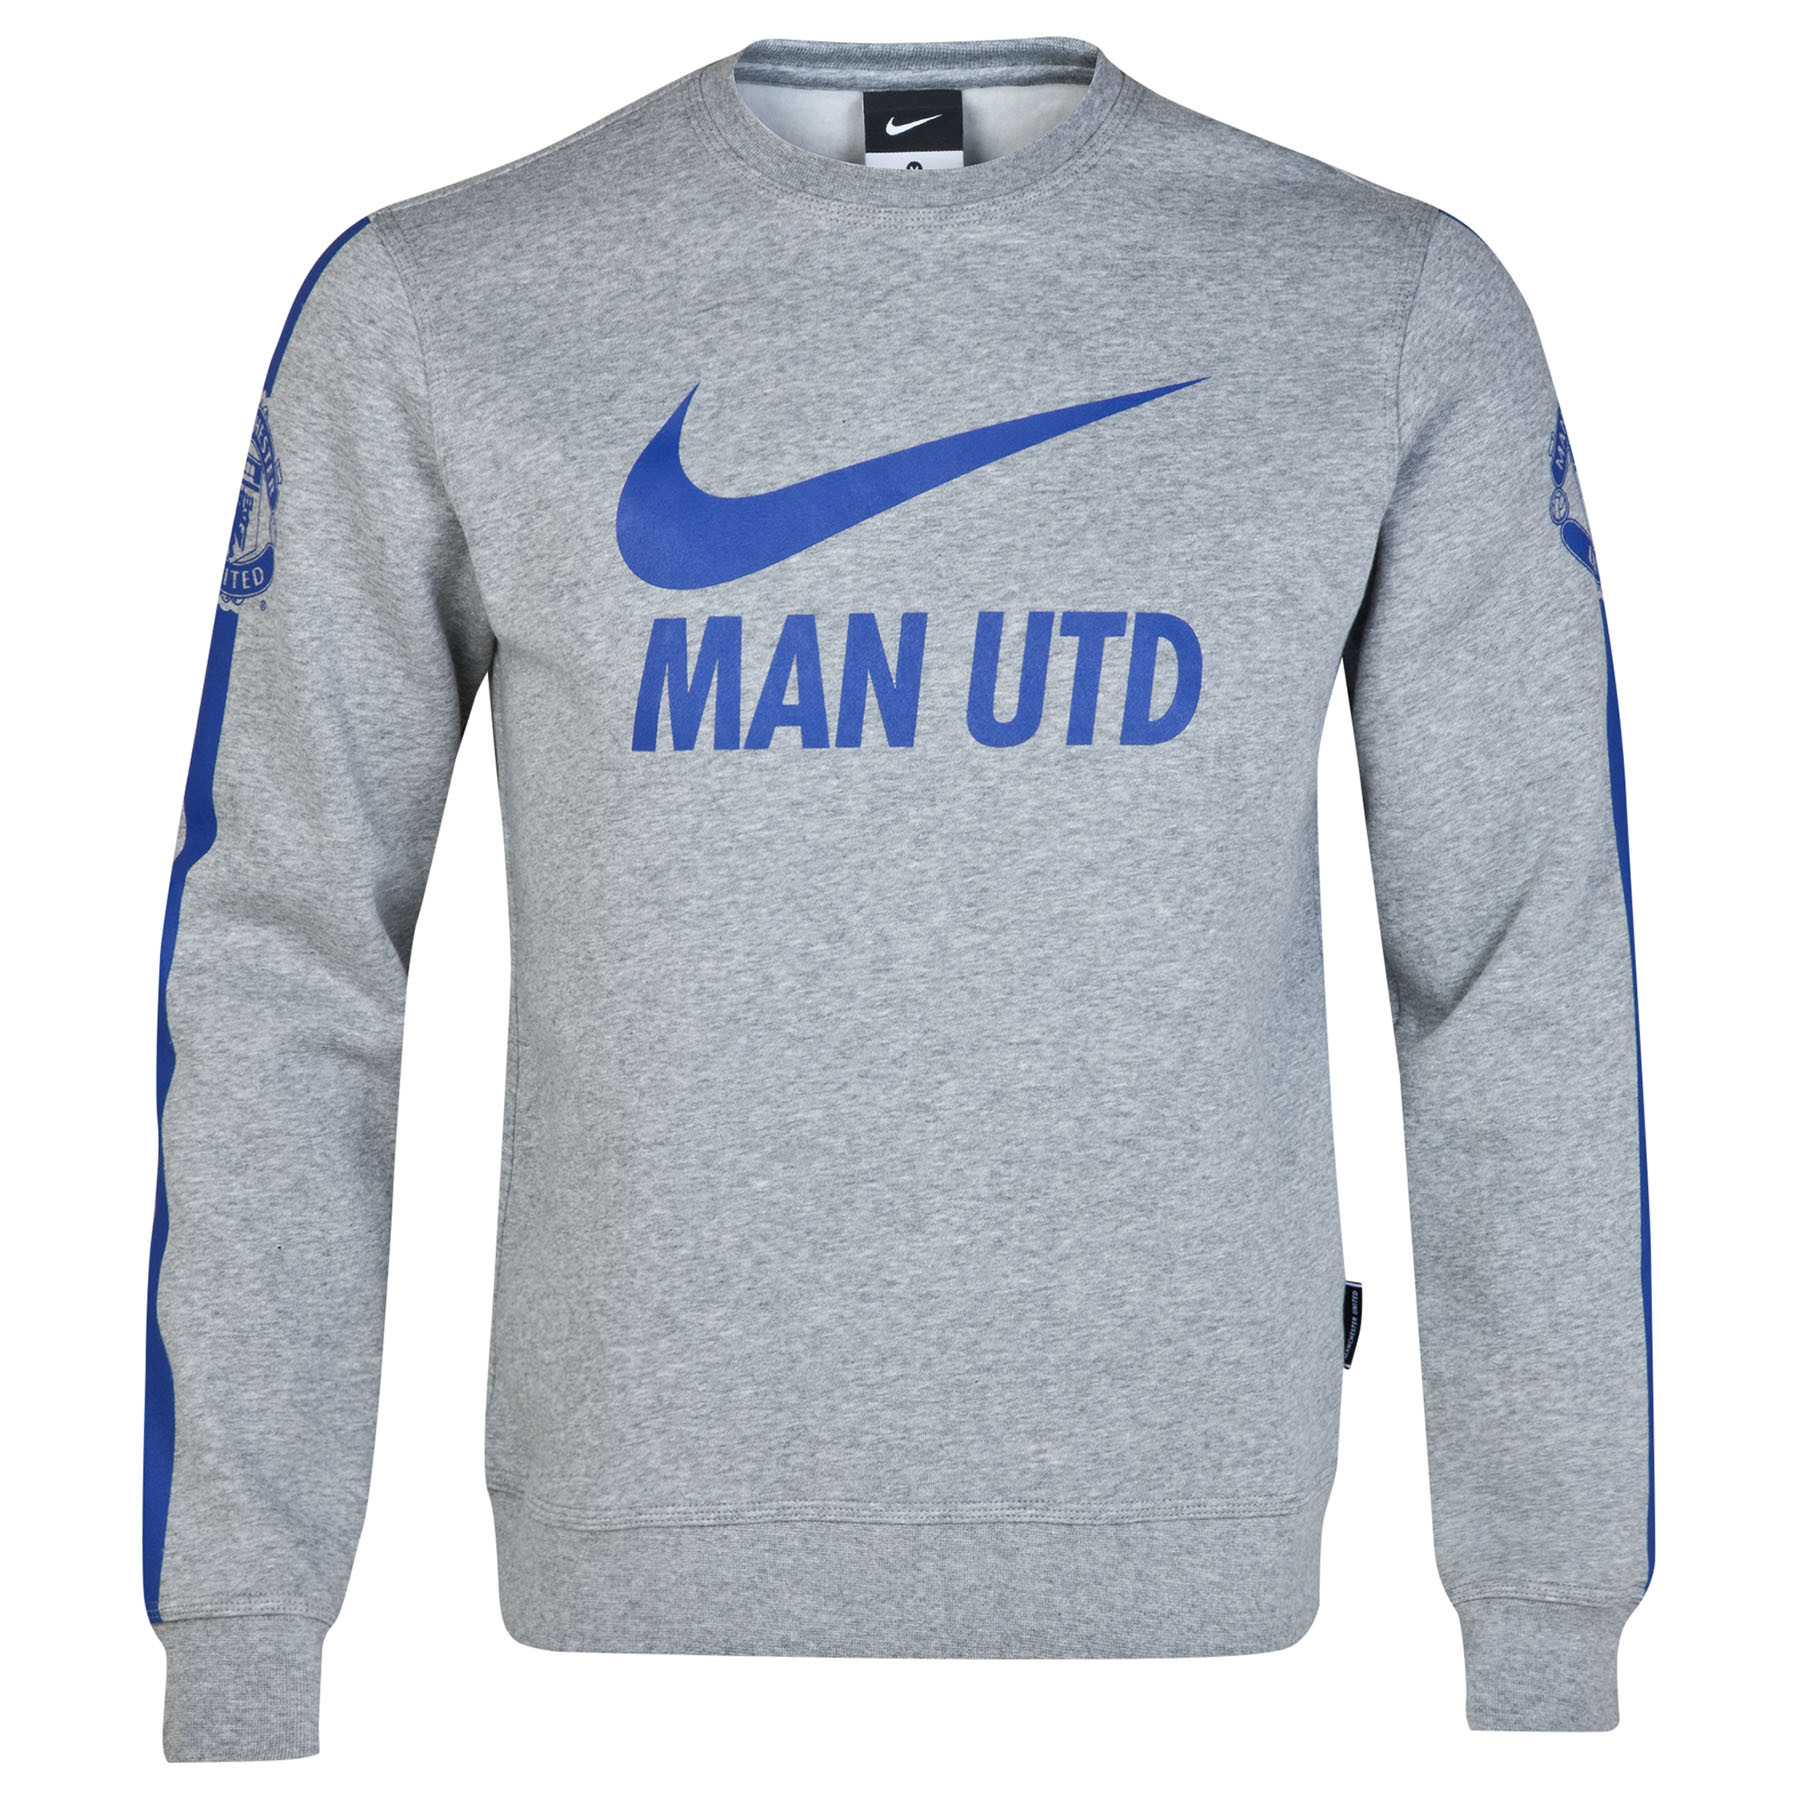 Manchester United Core Long Sleeve Crew Sweatshirt